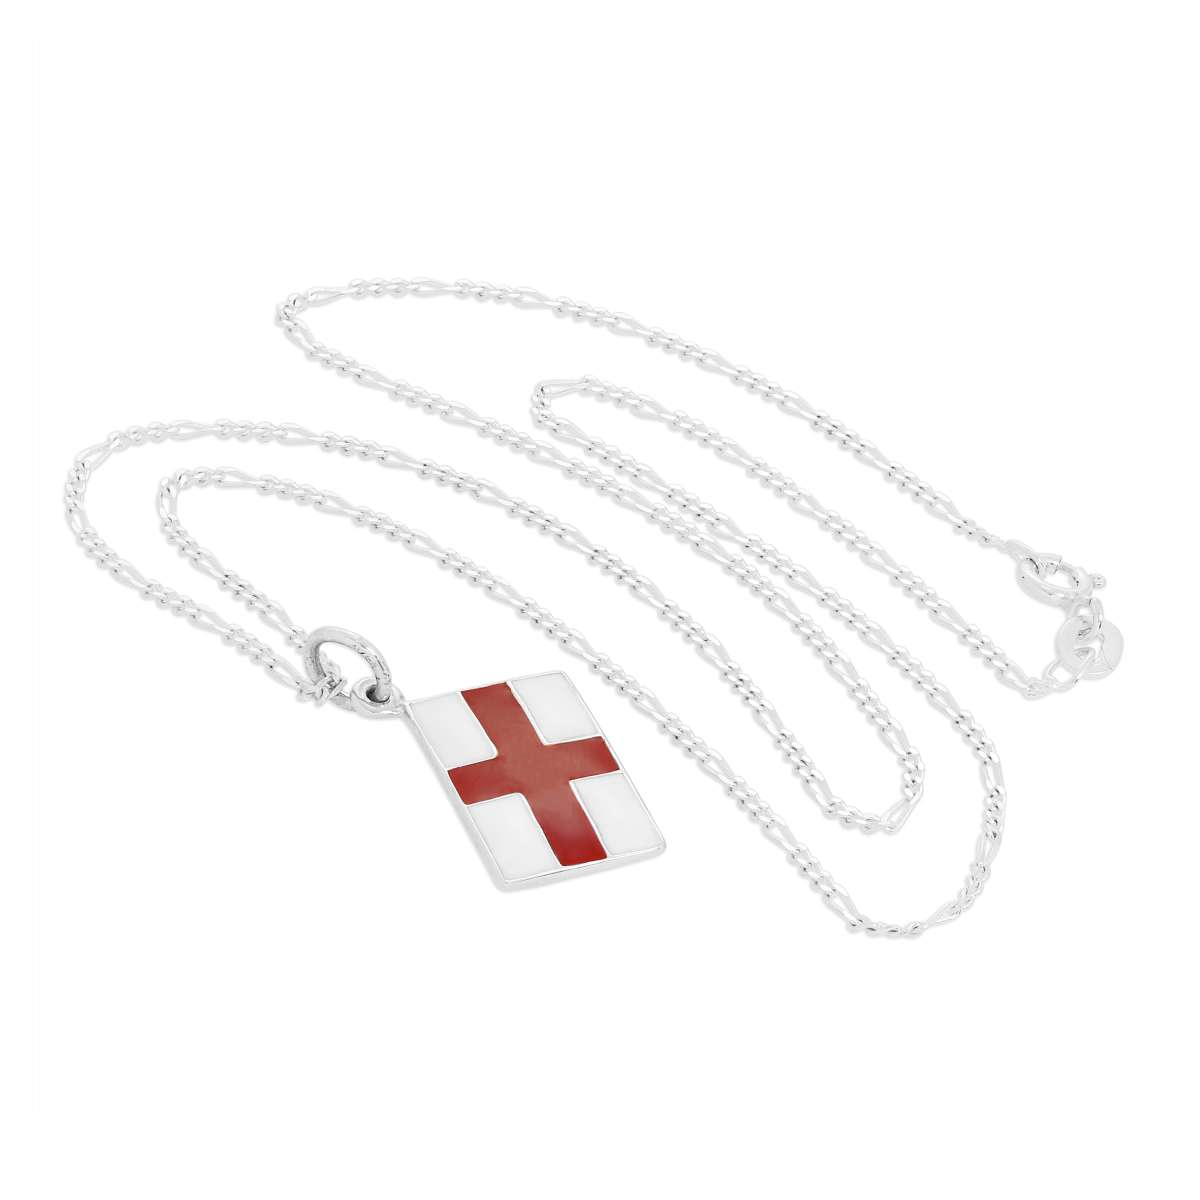 Alterative image for Sterling Silver English Flag Pendant Necklace 14 - 32 Inches